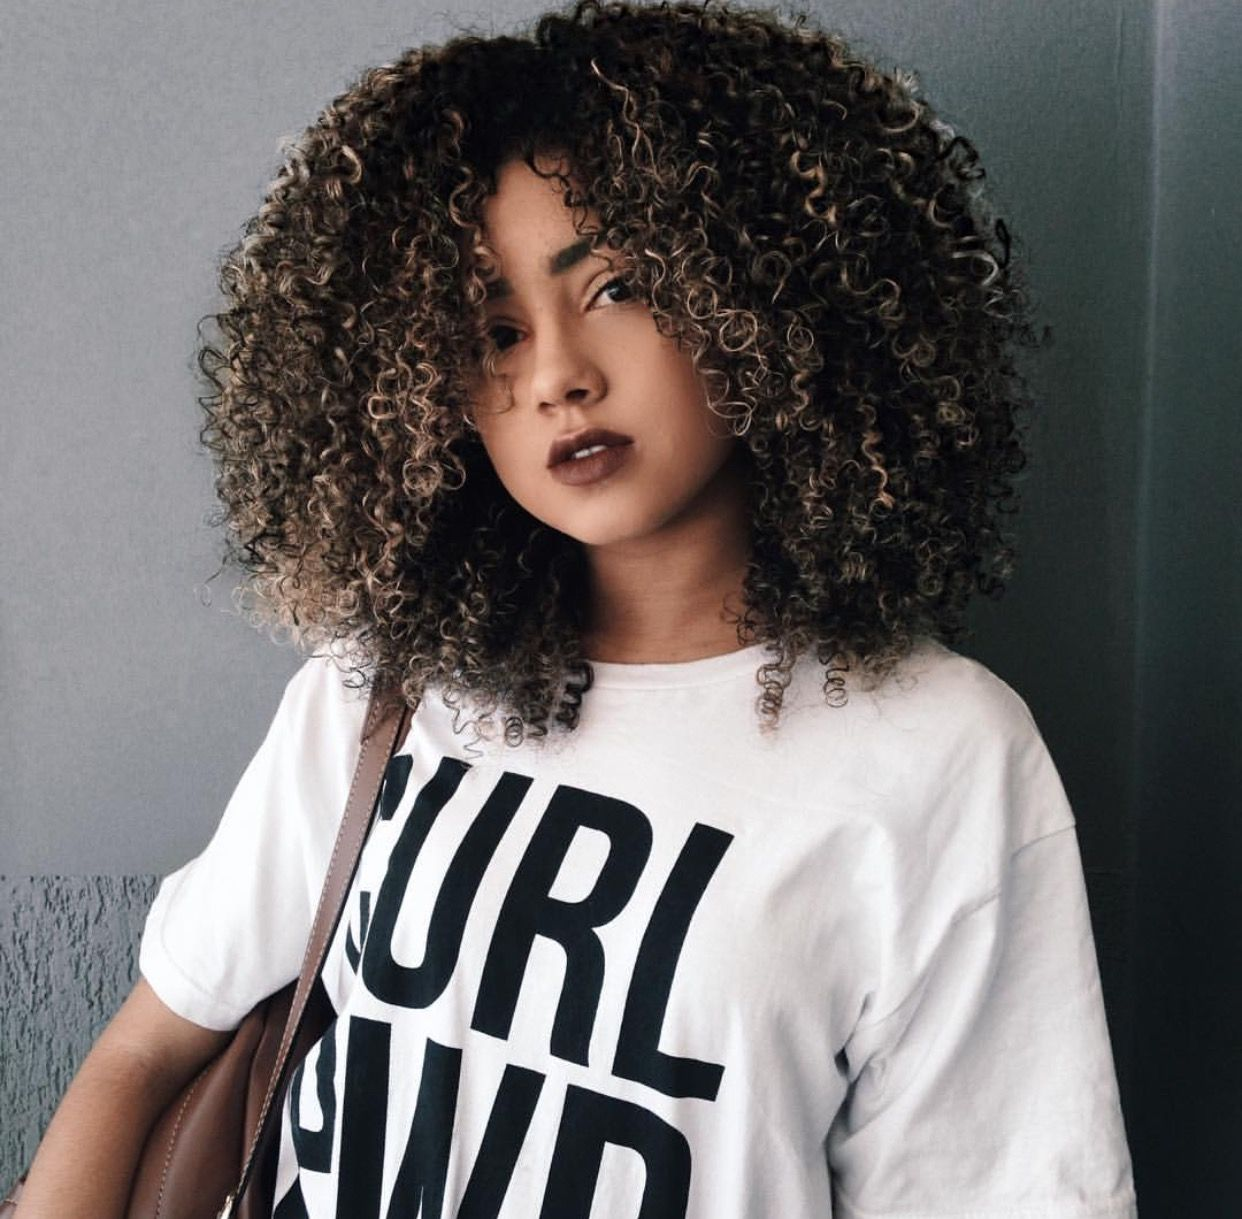 Hair color ideas curly girls pinterest hair coloring curly